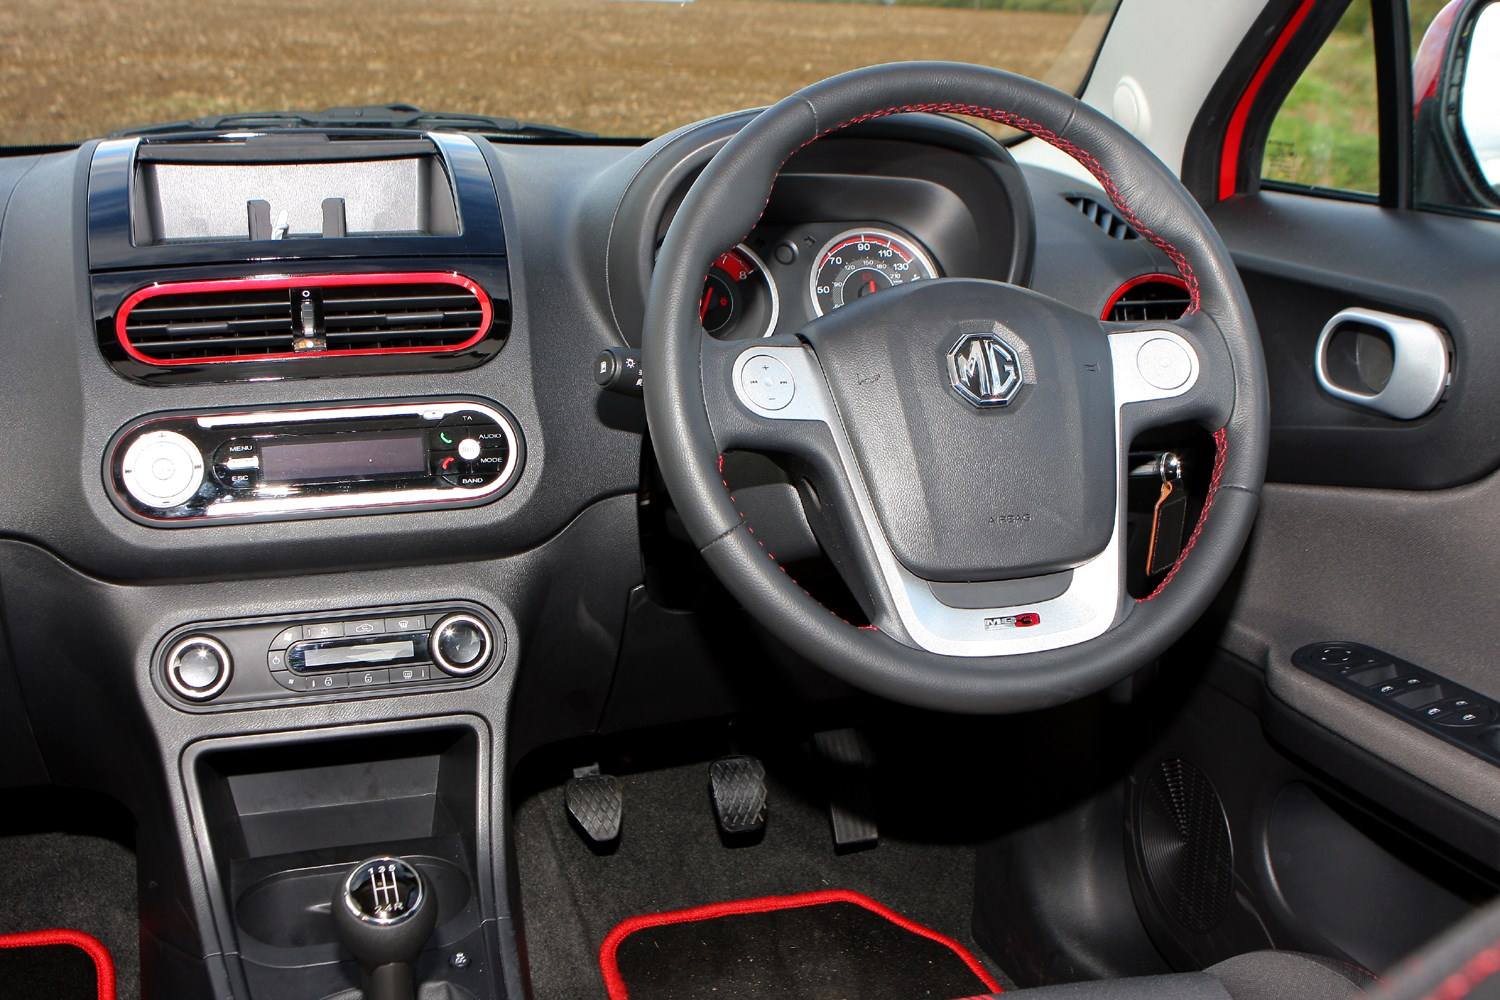 kia picanto used car kia picanto prices in uae gulf specs reviews for kia picanto. Black Bedroom Furniture Sets. Home Design Ideas